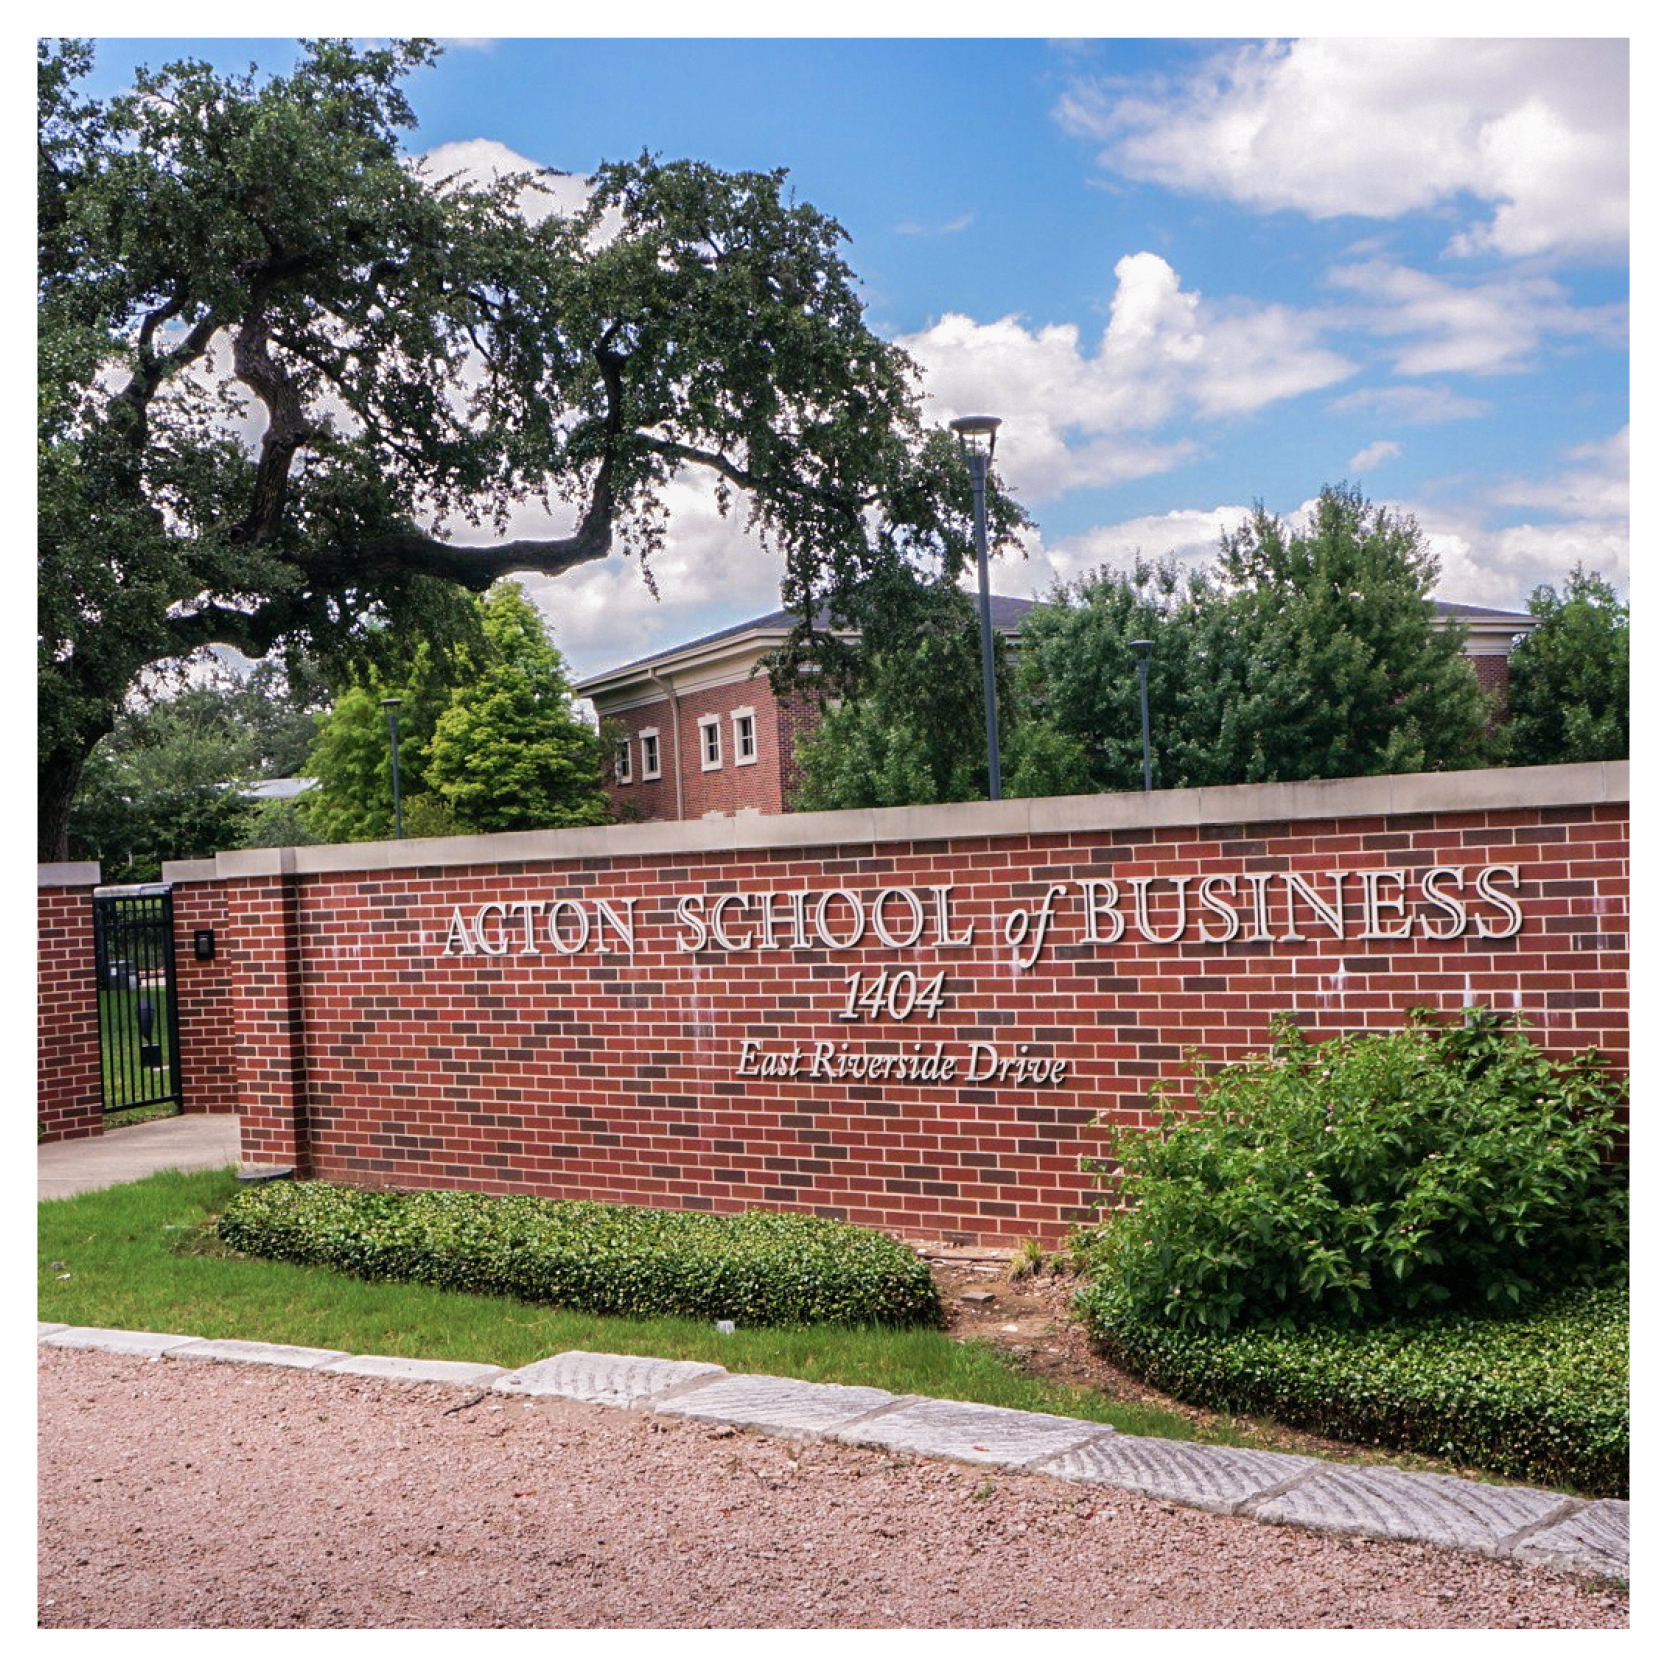 Acton School of Business